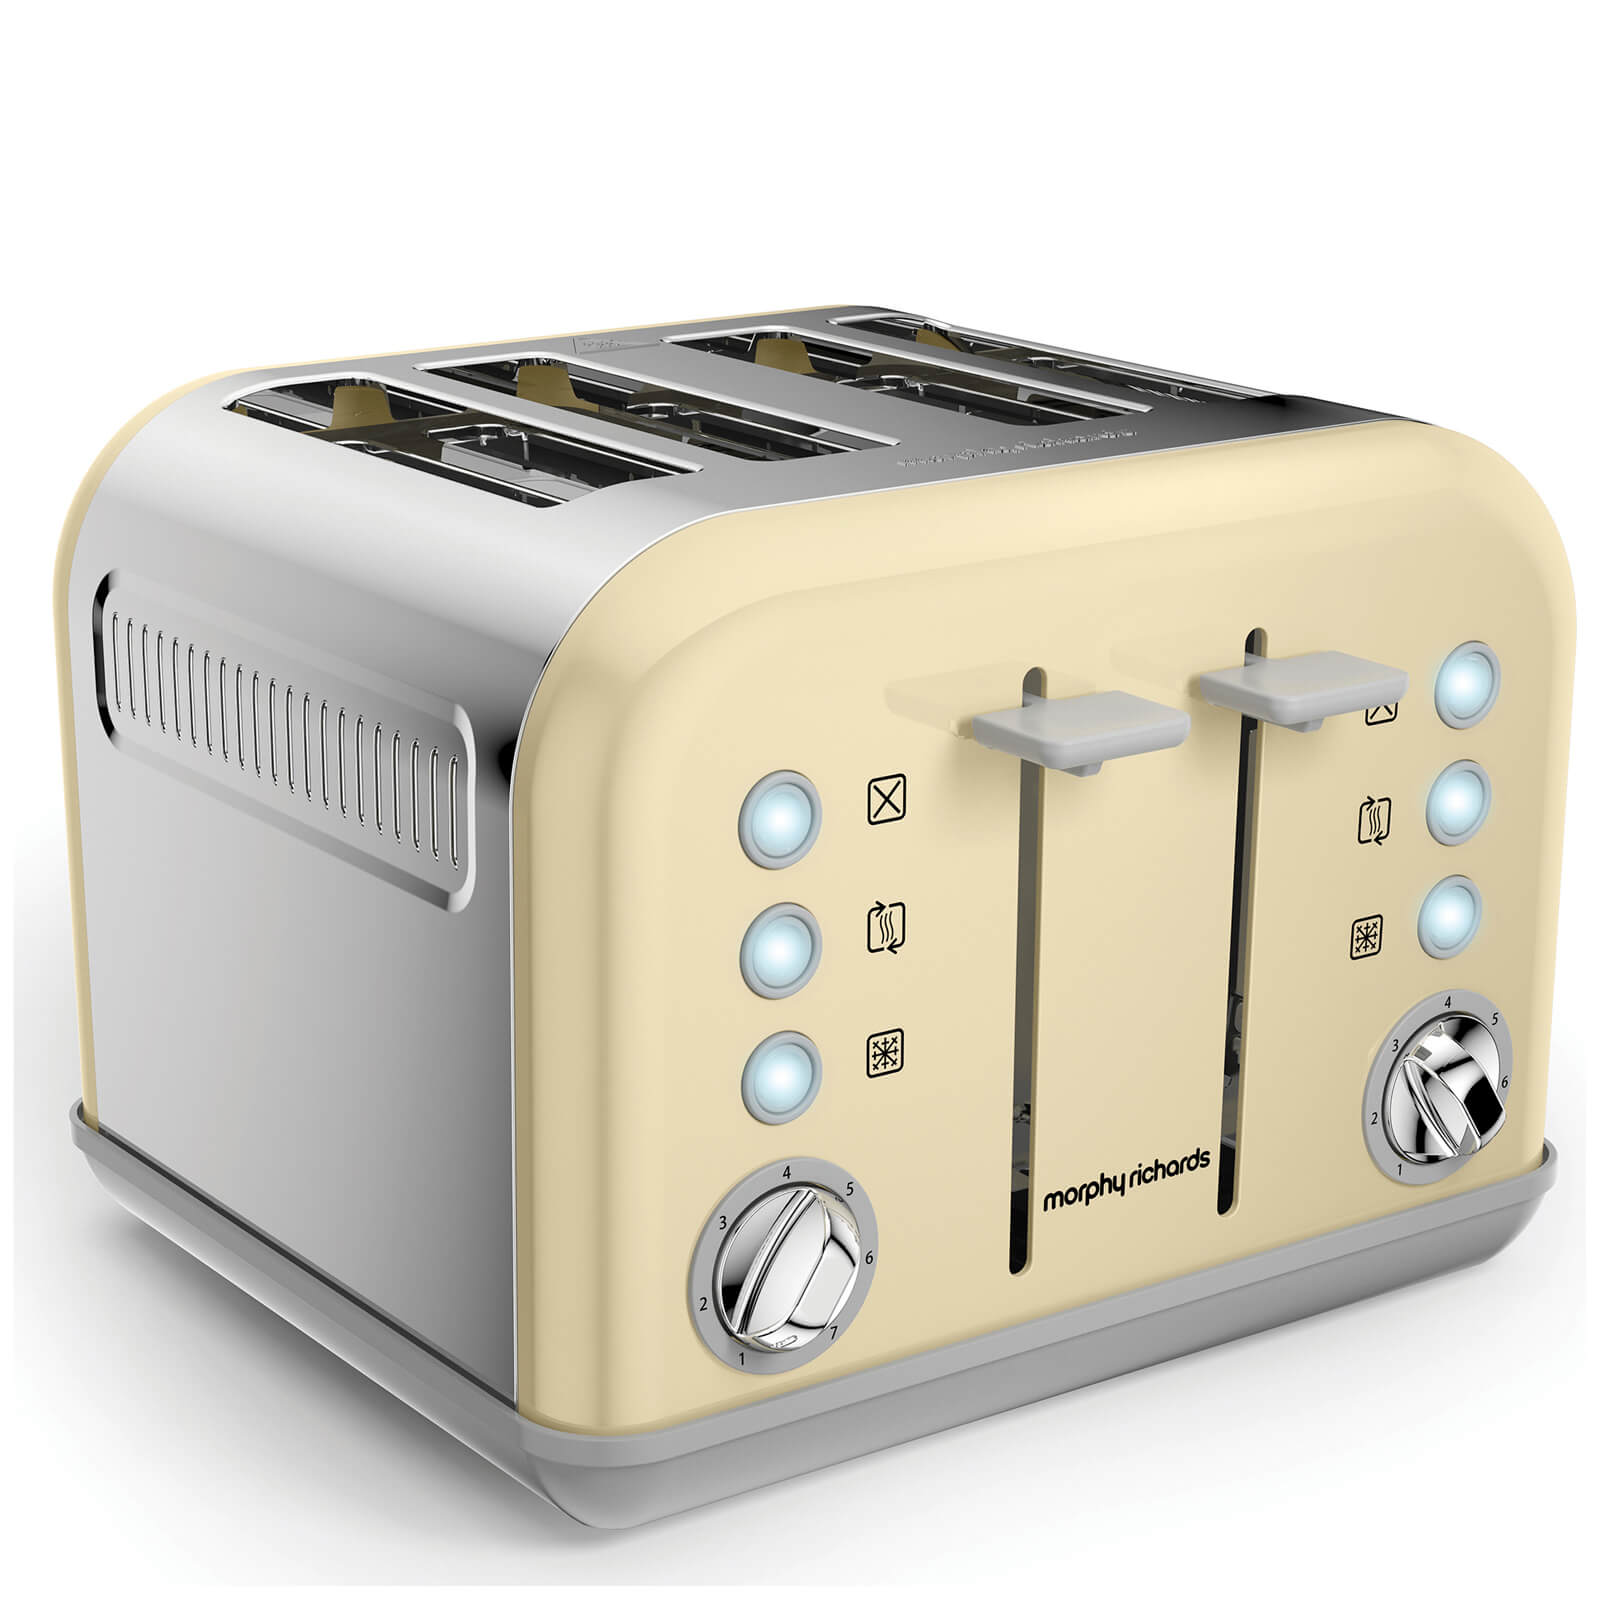 Morphy Richards 242033 Accents 4 Slice EPP Toaster - Cream